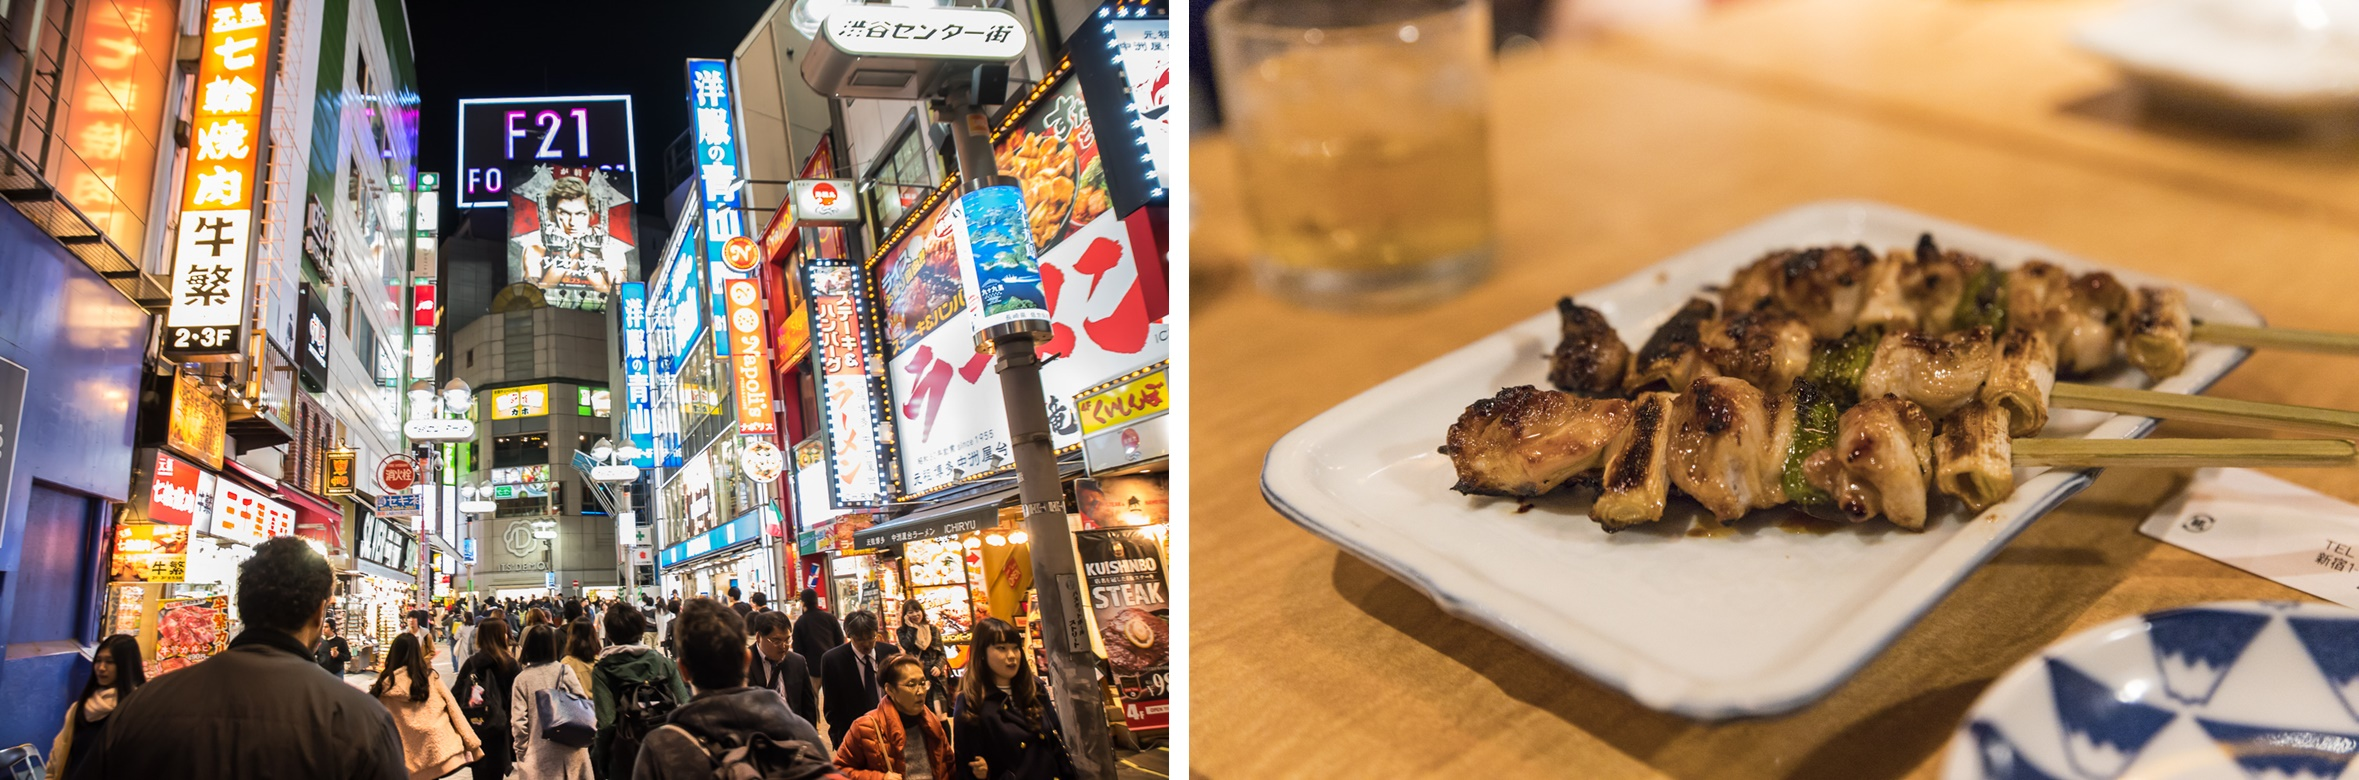 HIS Travel Japan Tokyo Shibuya Japanese Street Food Tour